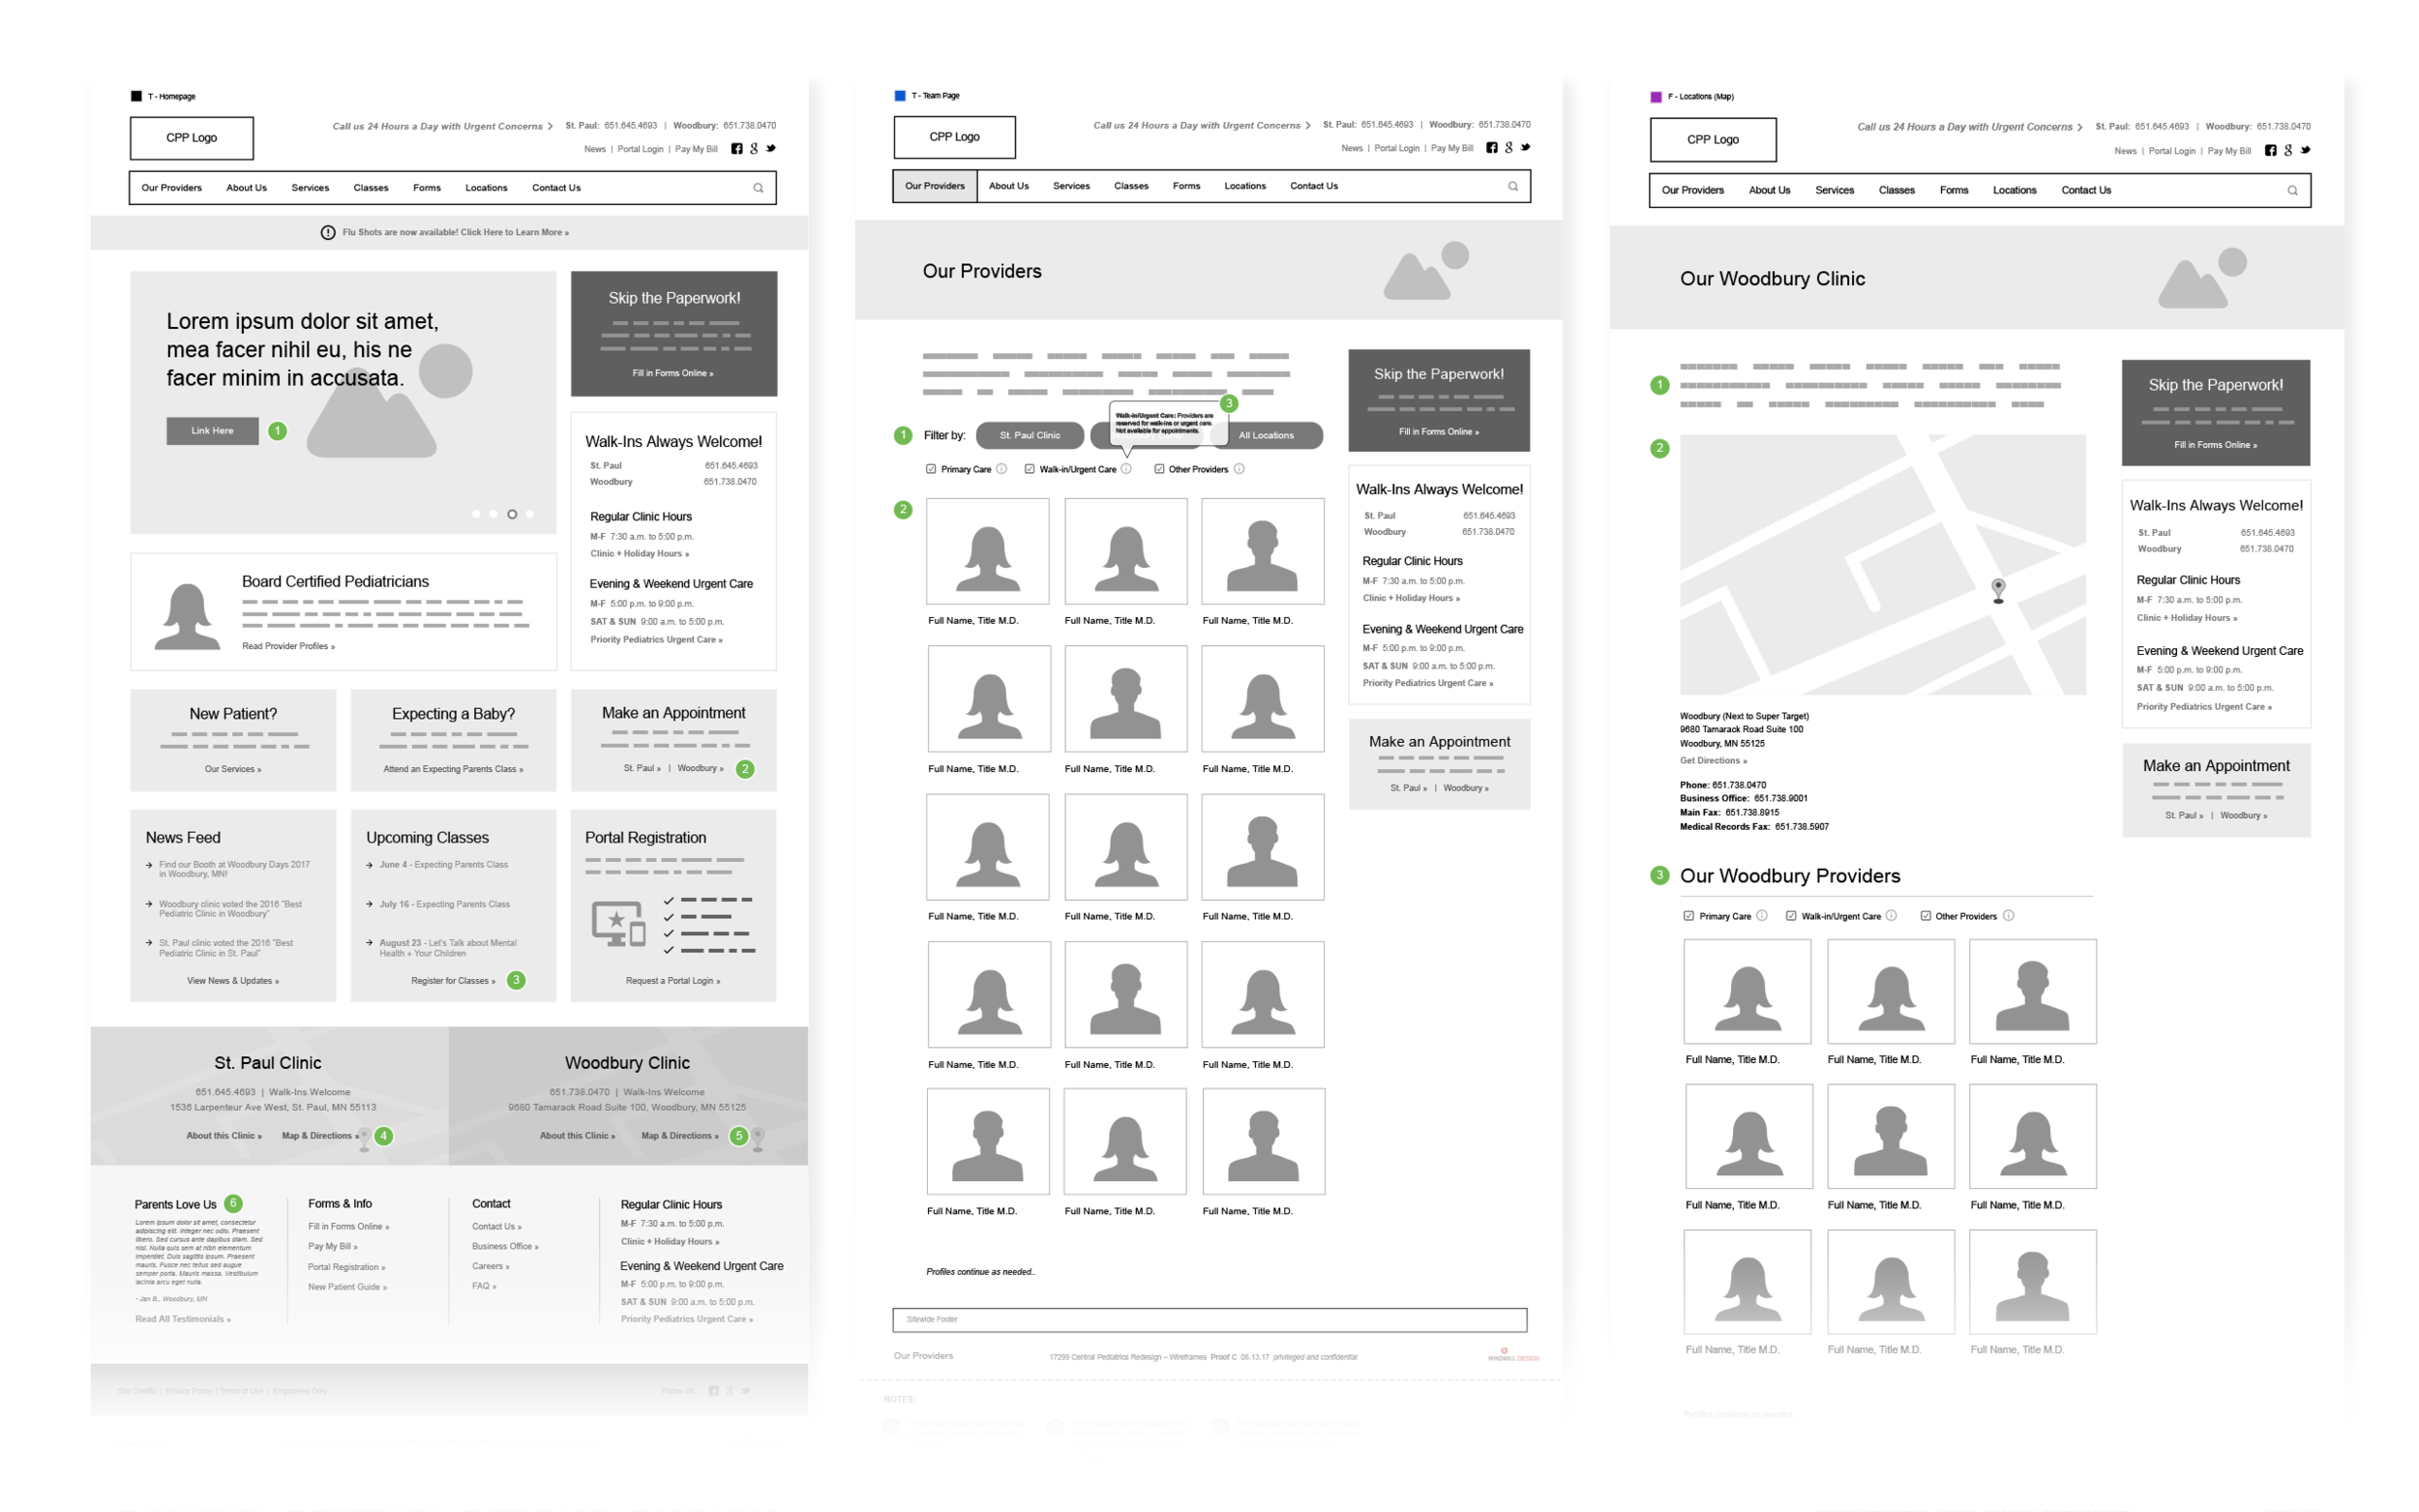 karly-a-design-wireframes-ui-ux-design-for-central-peds.png